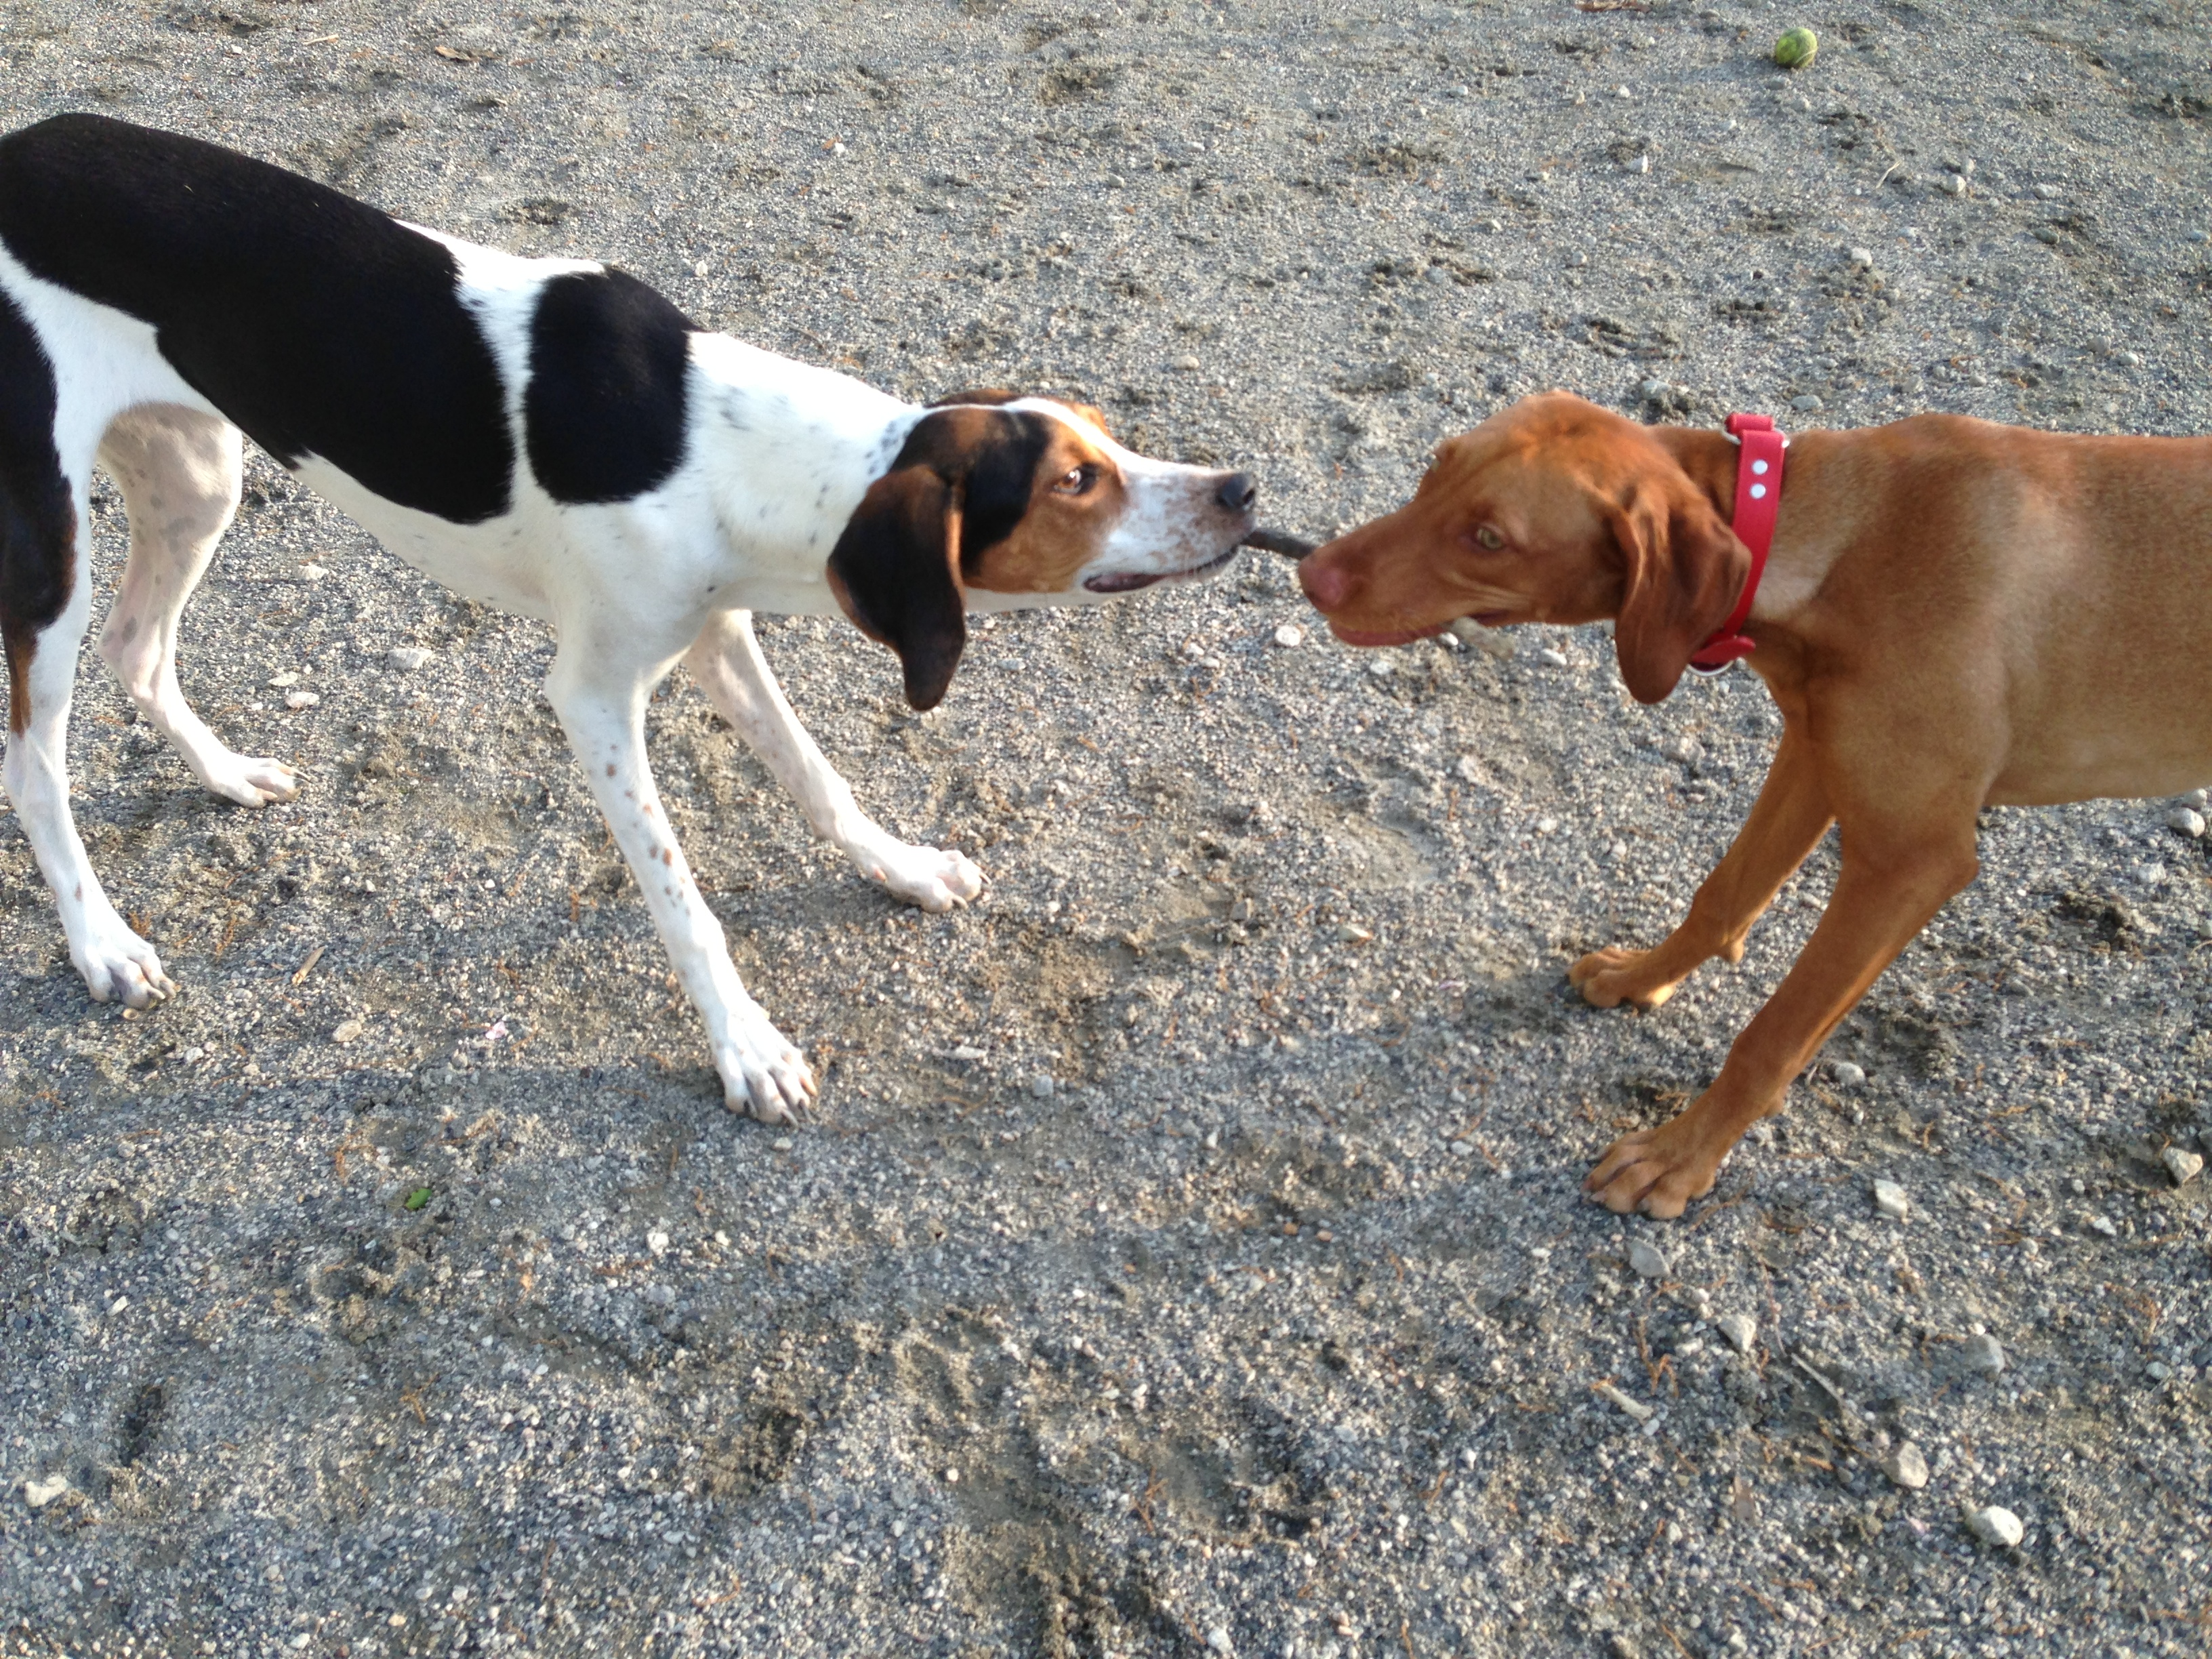 Zara plays with a coonhound